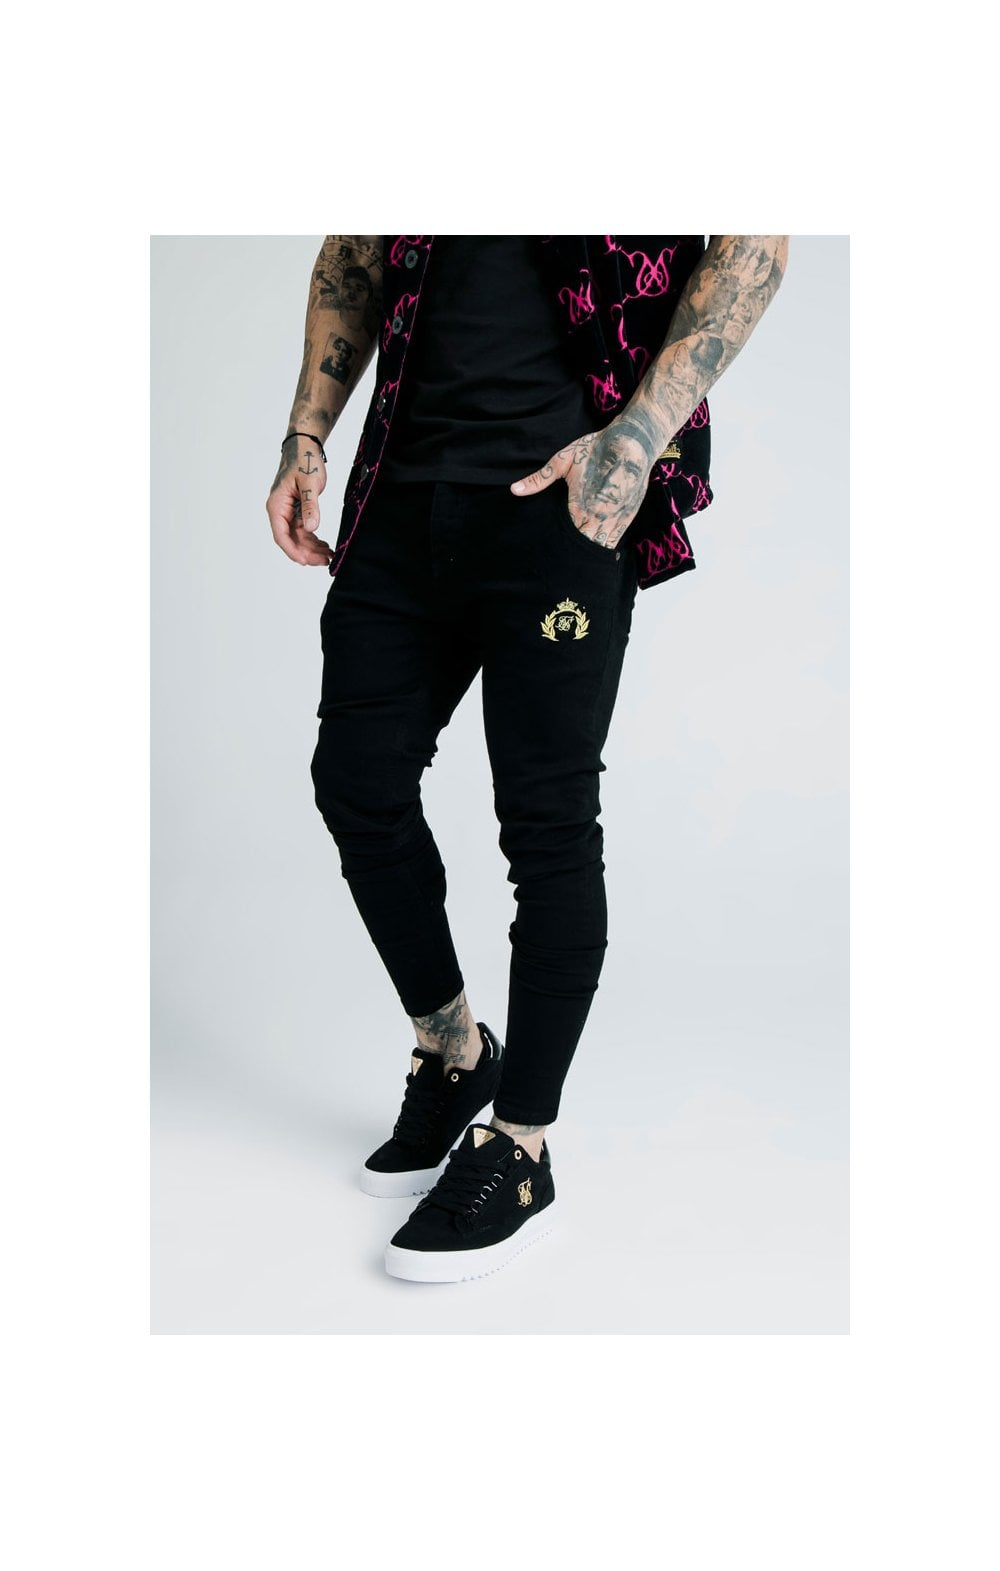 Load image into Gallery viewer, SikSilk x Dani Alves Low Rise Prestige Denims - Black (1)